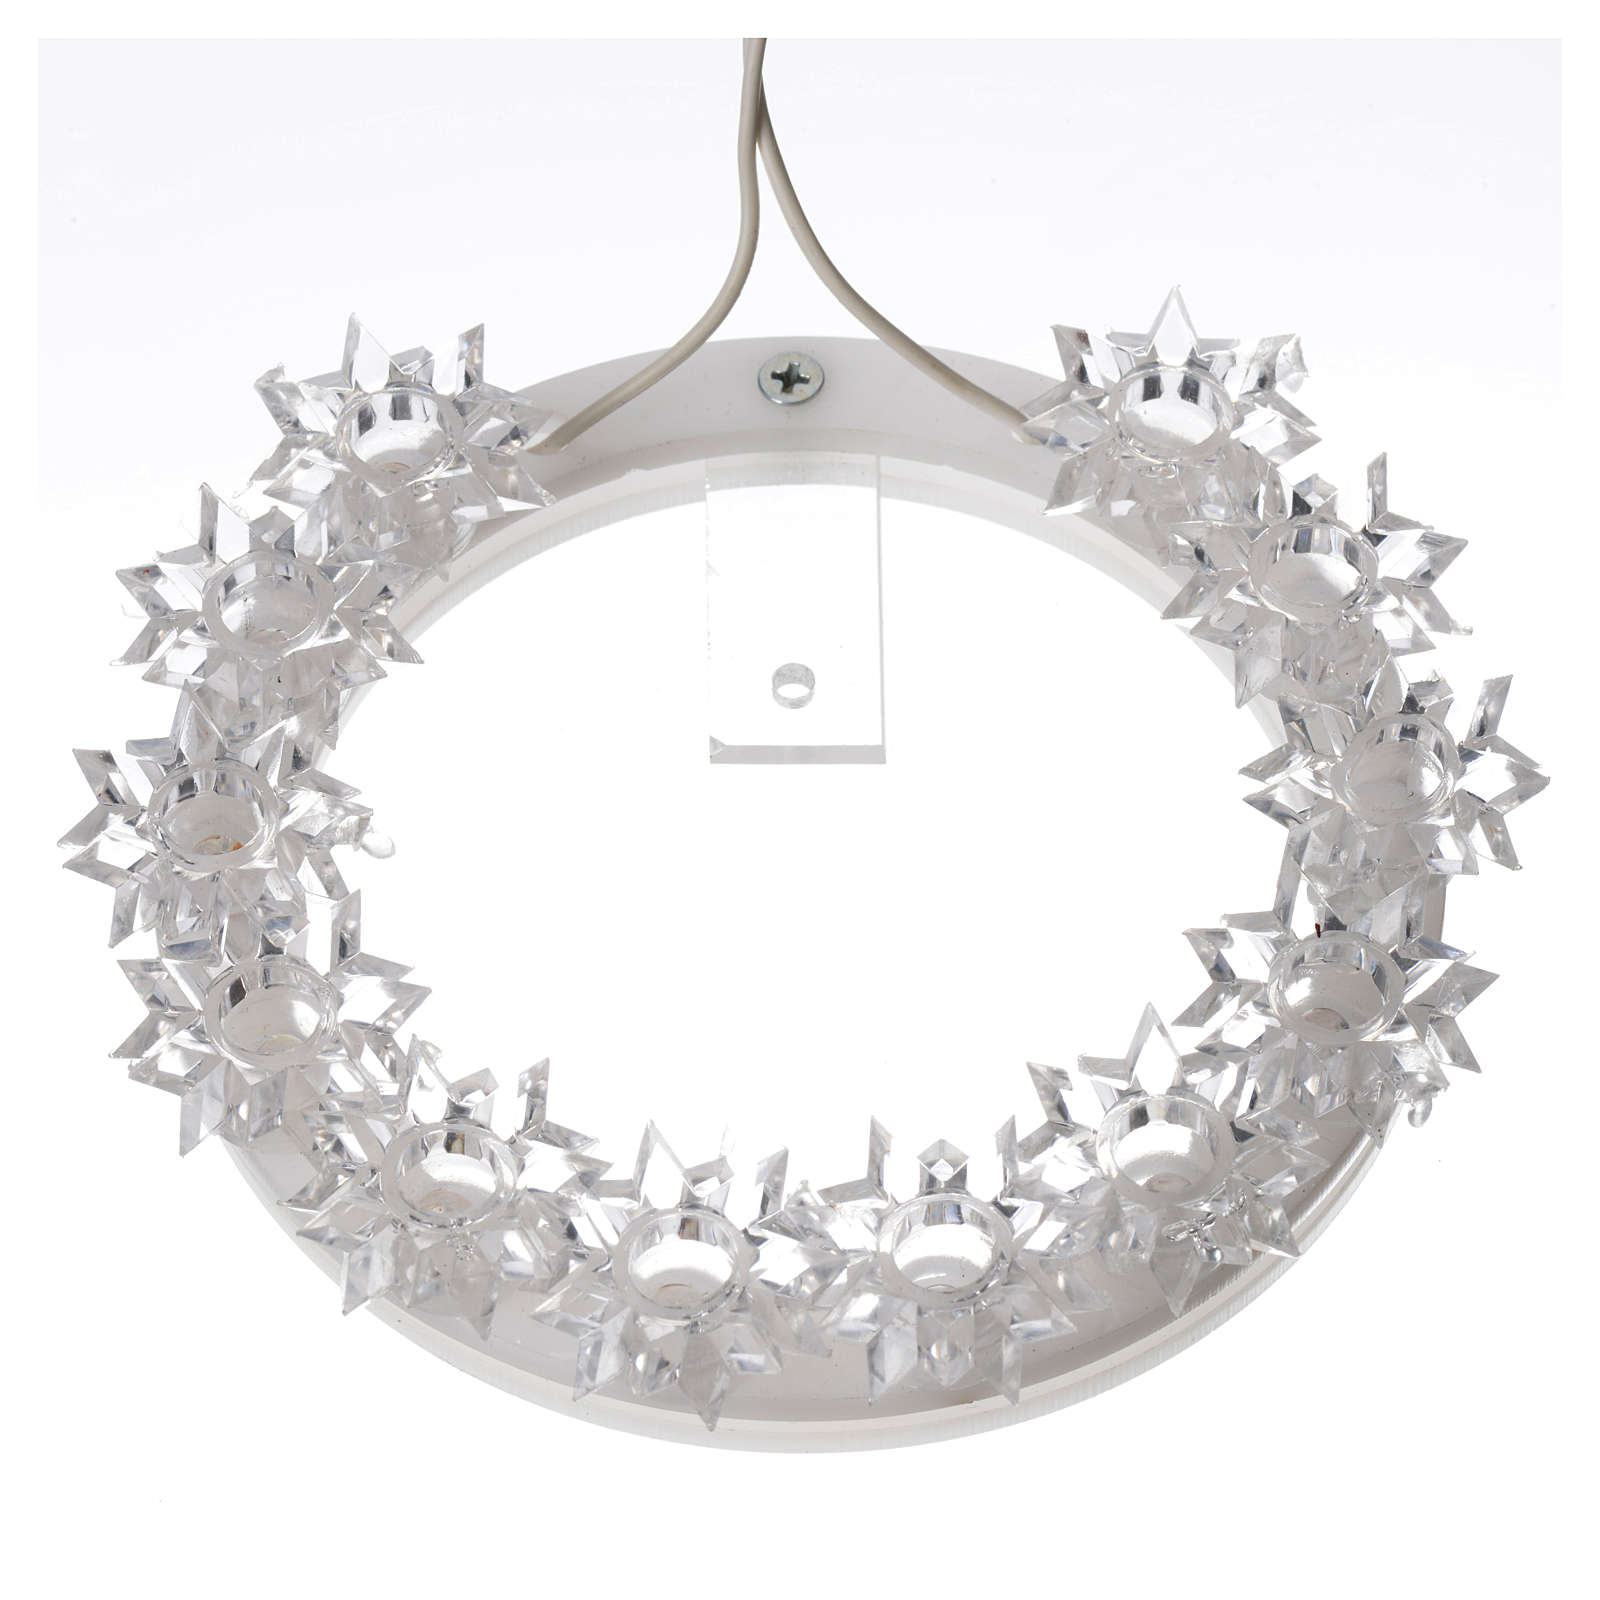 Plexiglas luminous halo with flowers and light blue LED 3